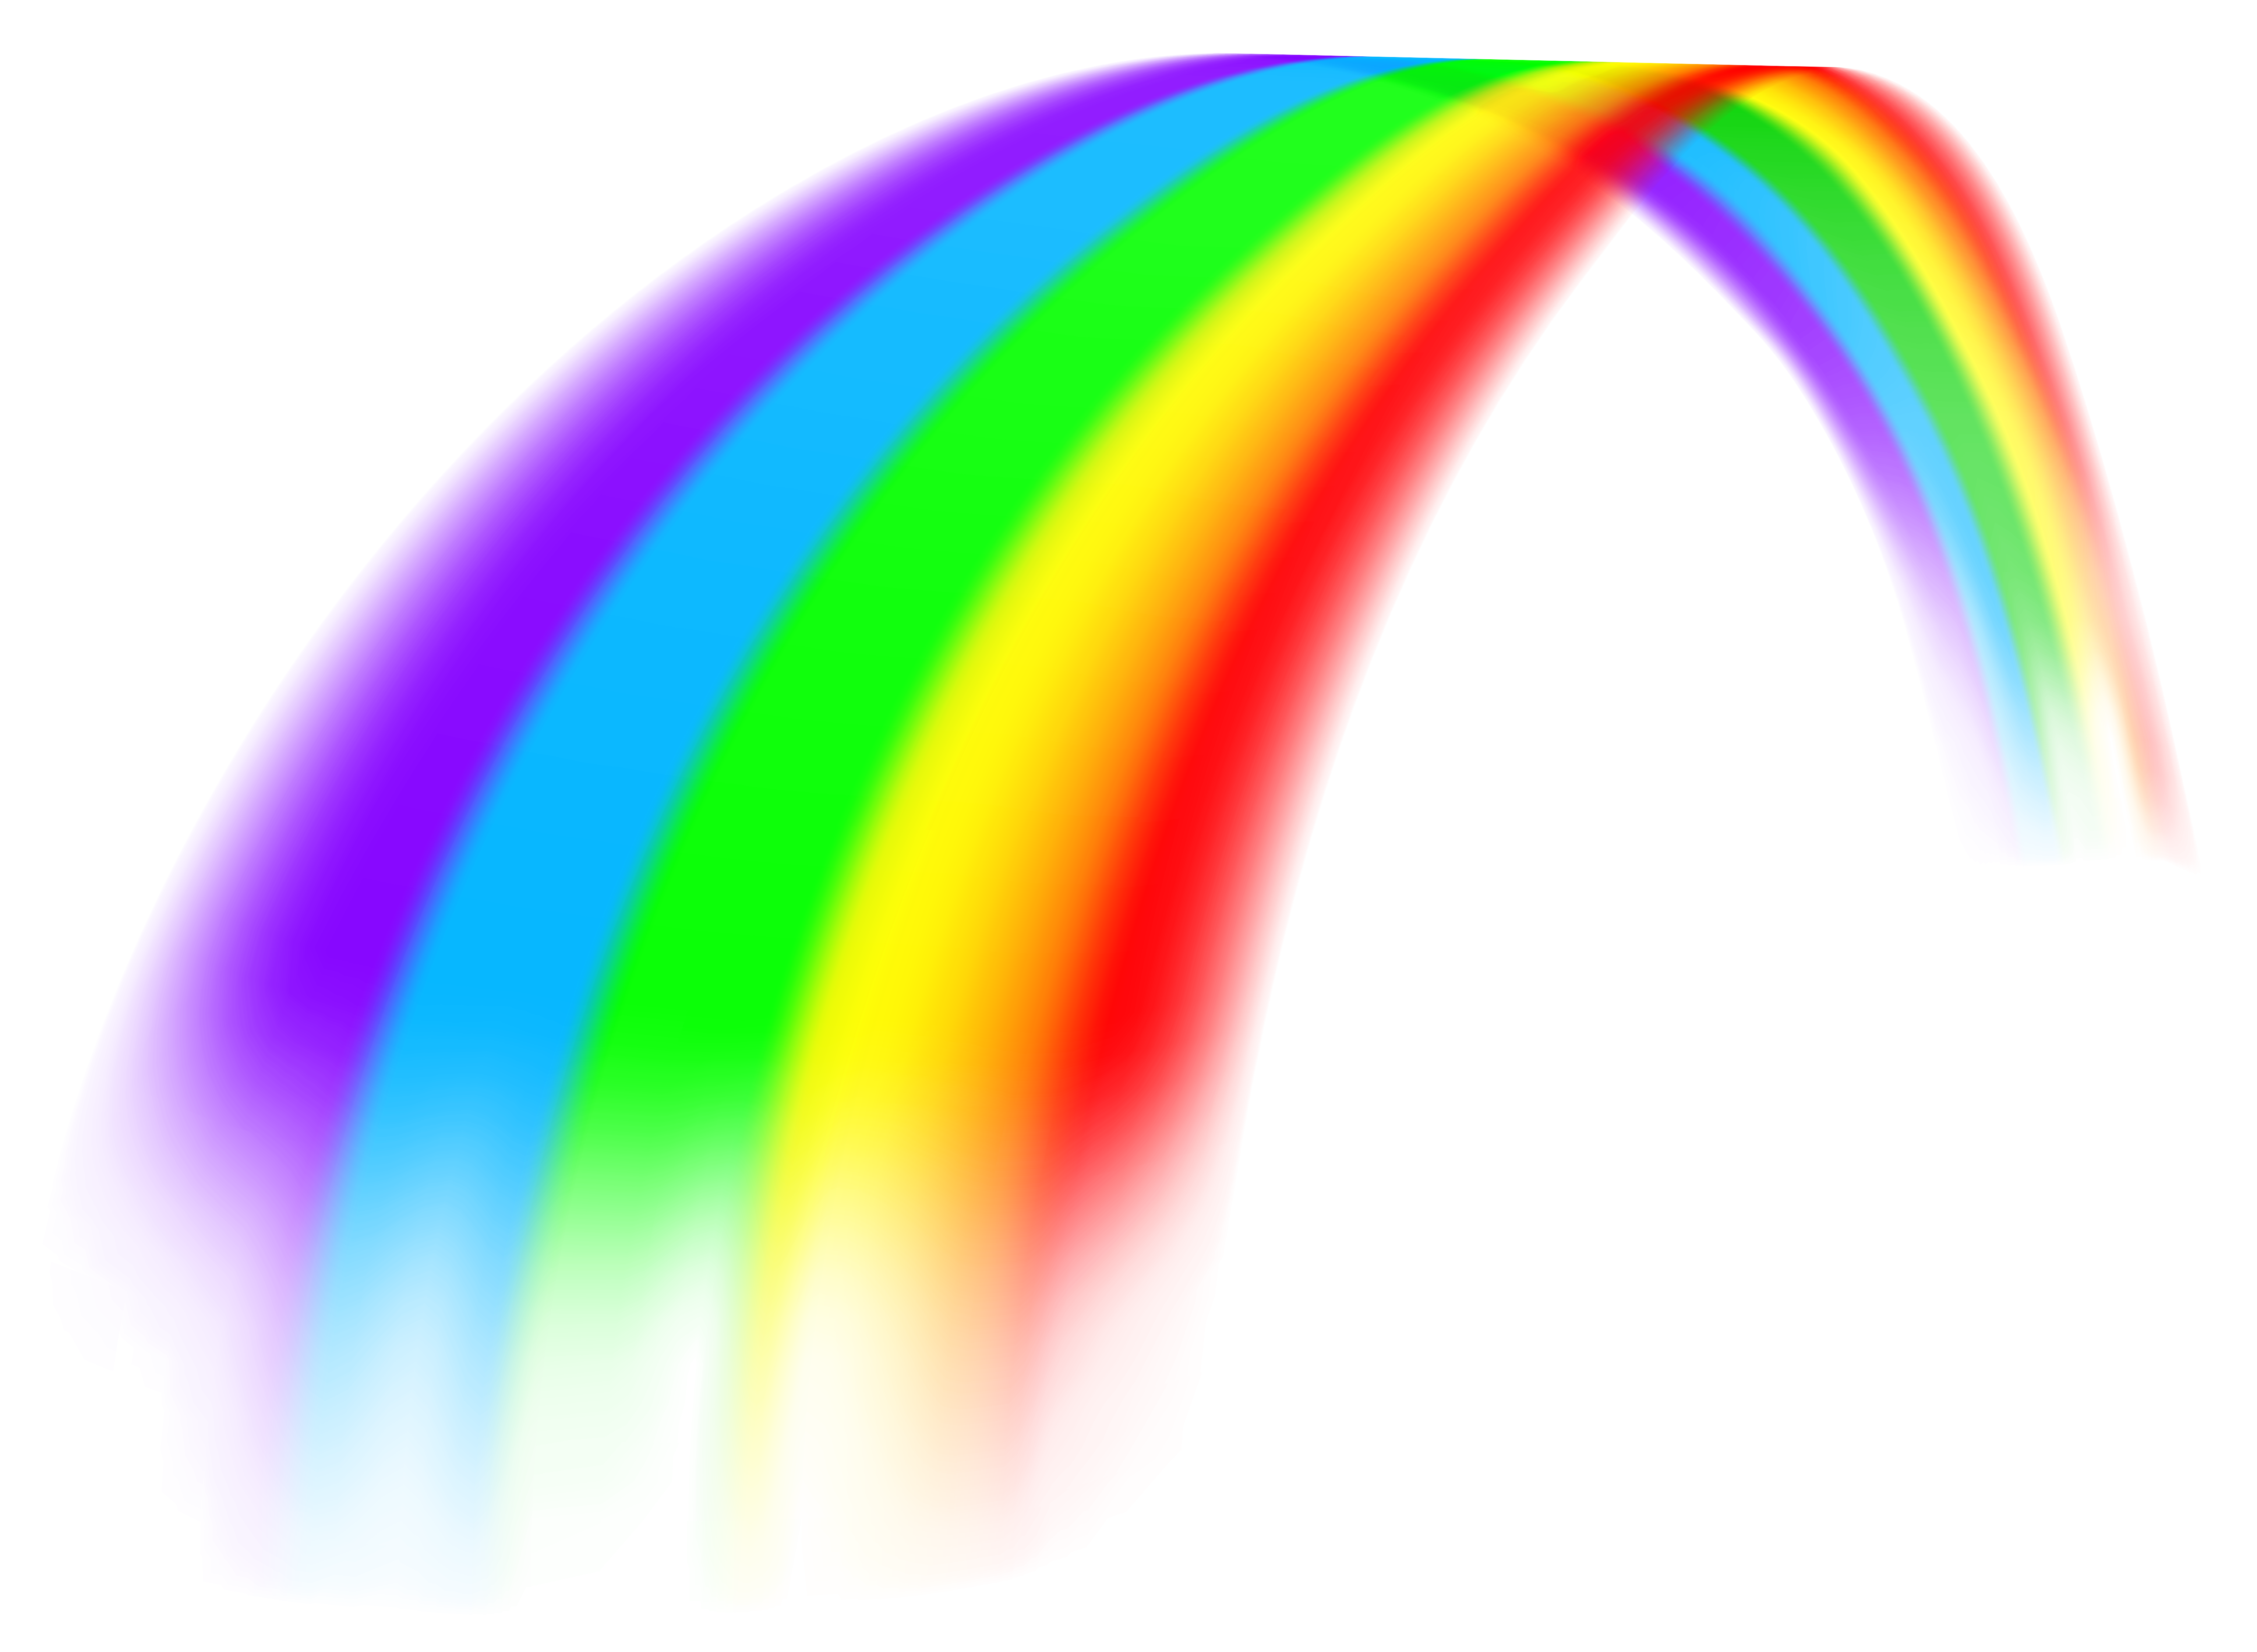 Rainbow HD PNG Images, Rainbow Clipart Free Download ...